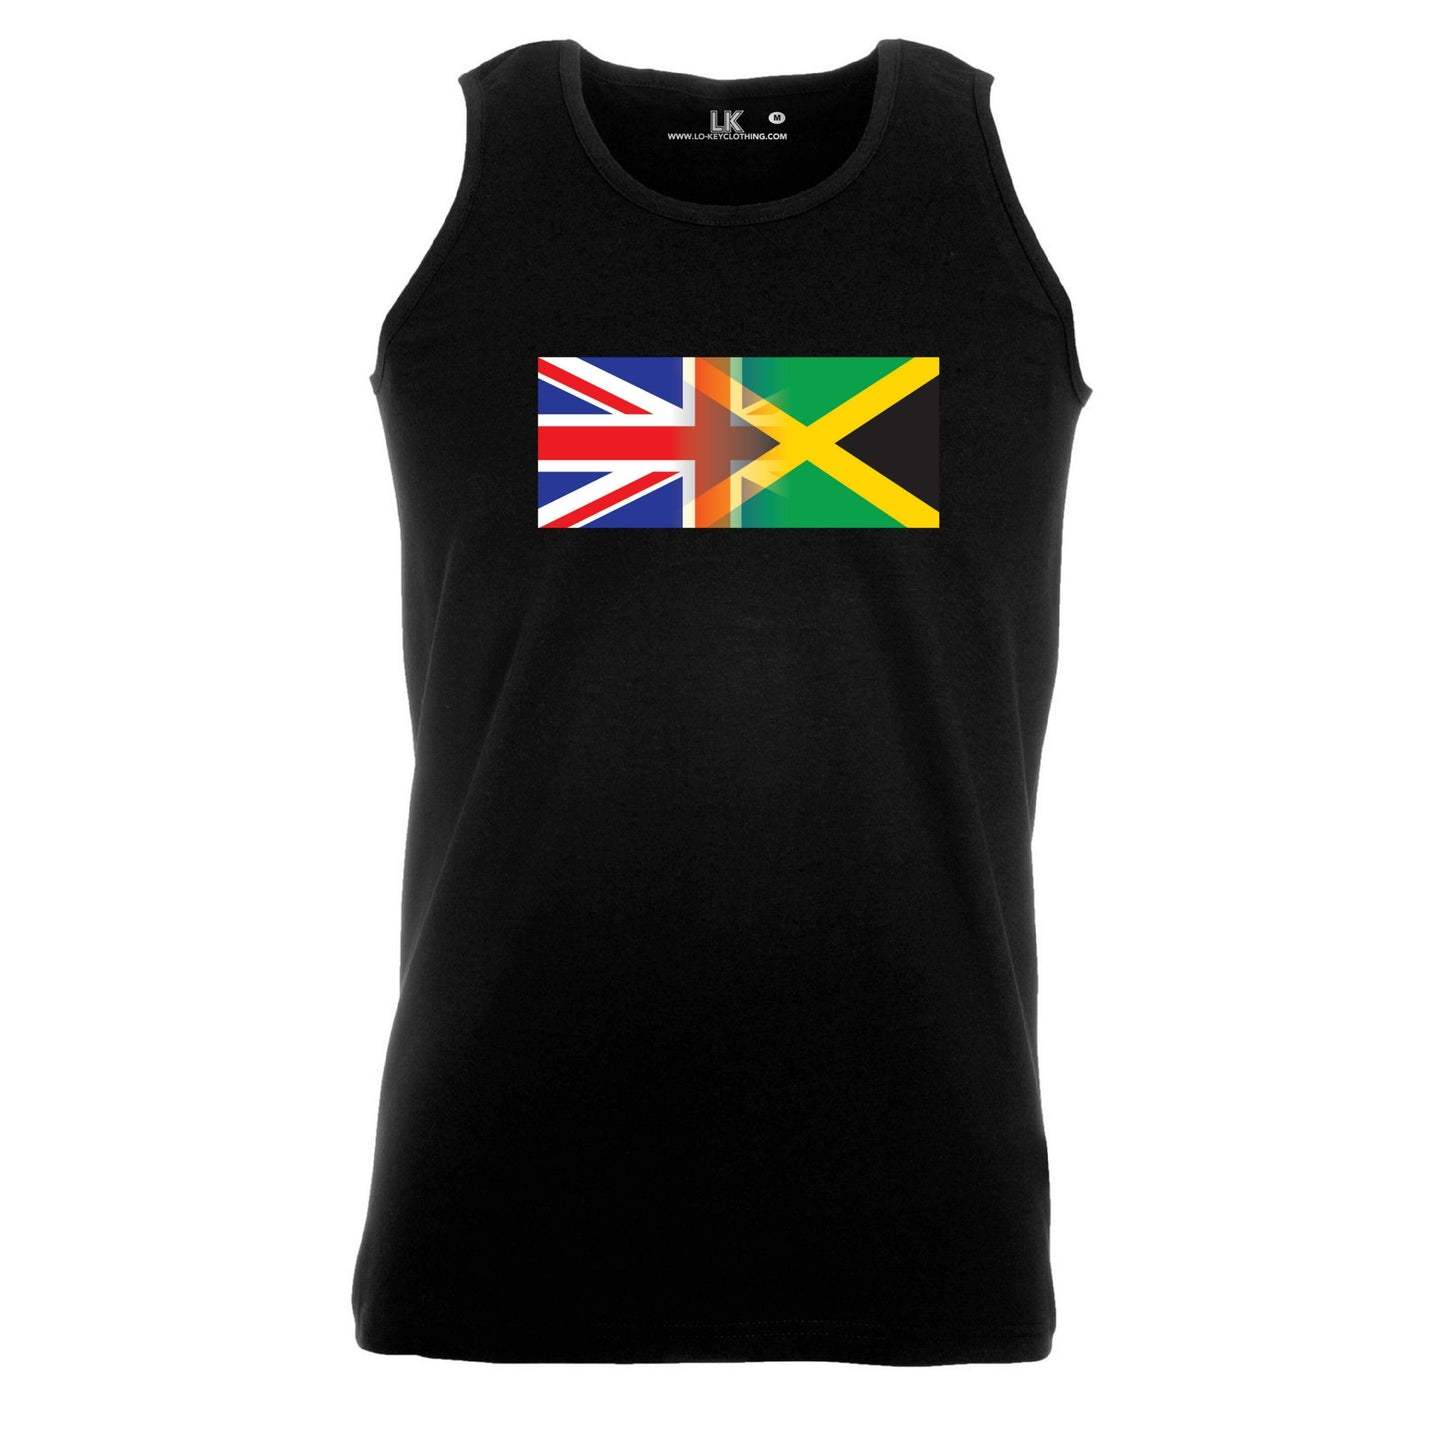 Men's Personalise Mixed Heritage Flag Tank Top Vest